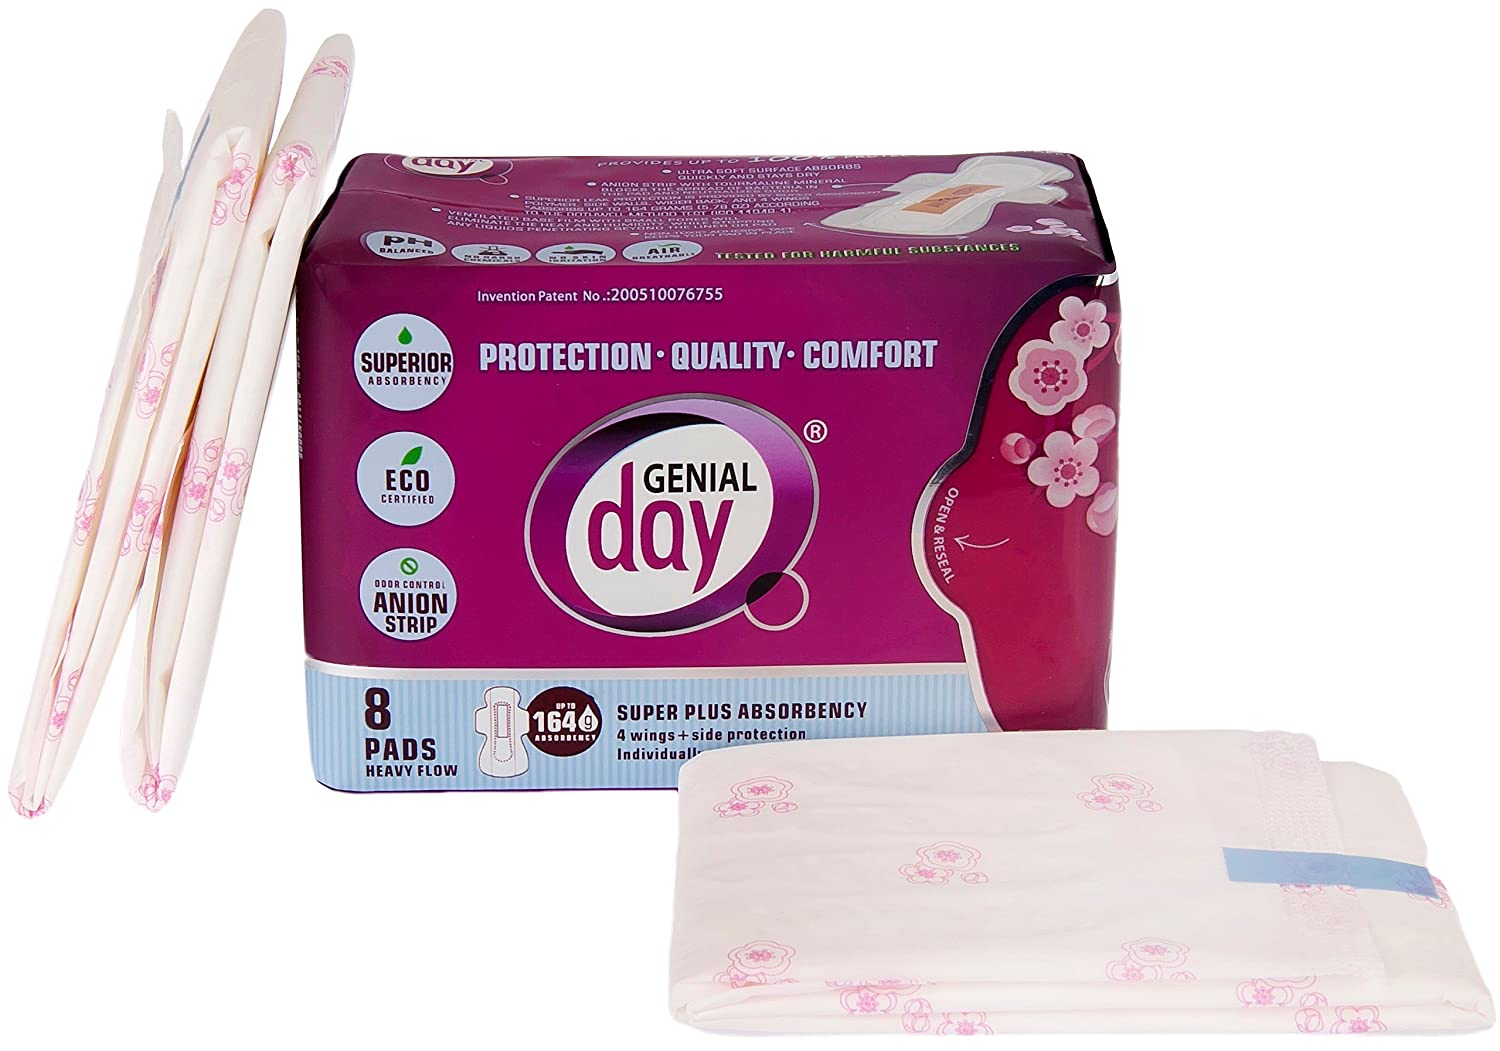 Amazon.com: Genial Day Organic Cotton Unscented Eco Certified Super Absorbency Pad With Wings Featuring Odor Control Anion Strip Heavy Flow - 3 Packs of 8 ...